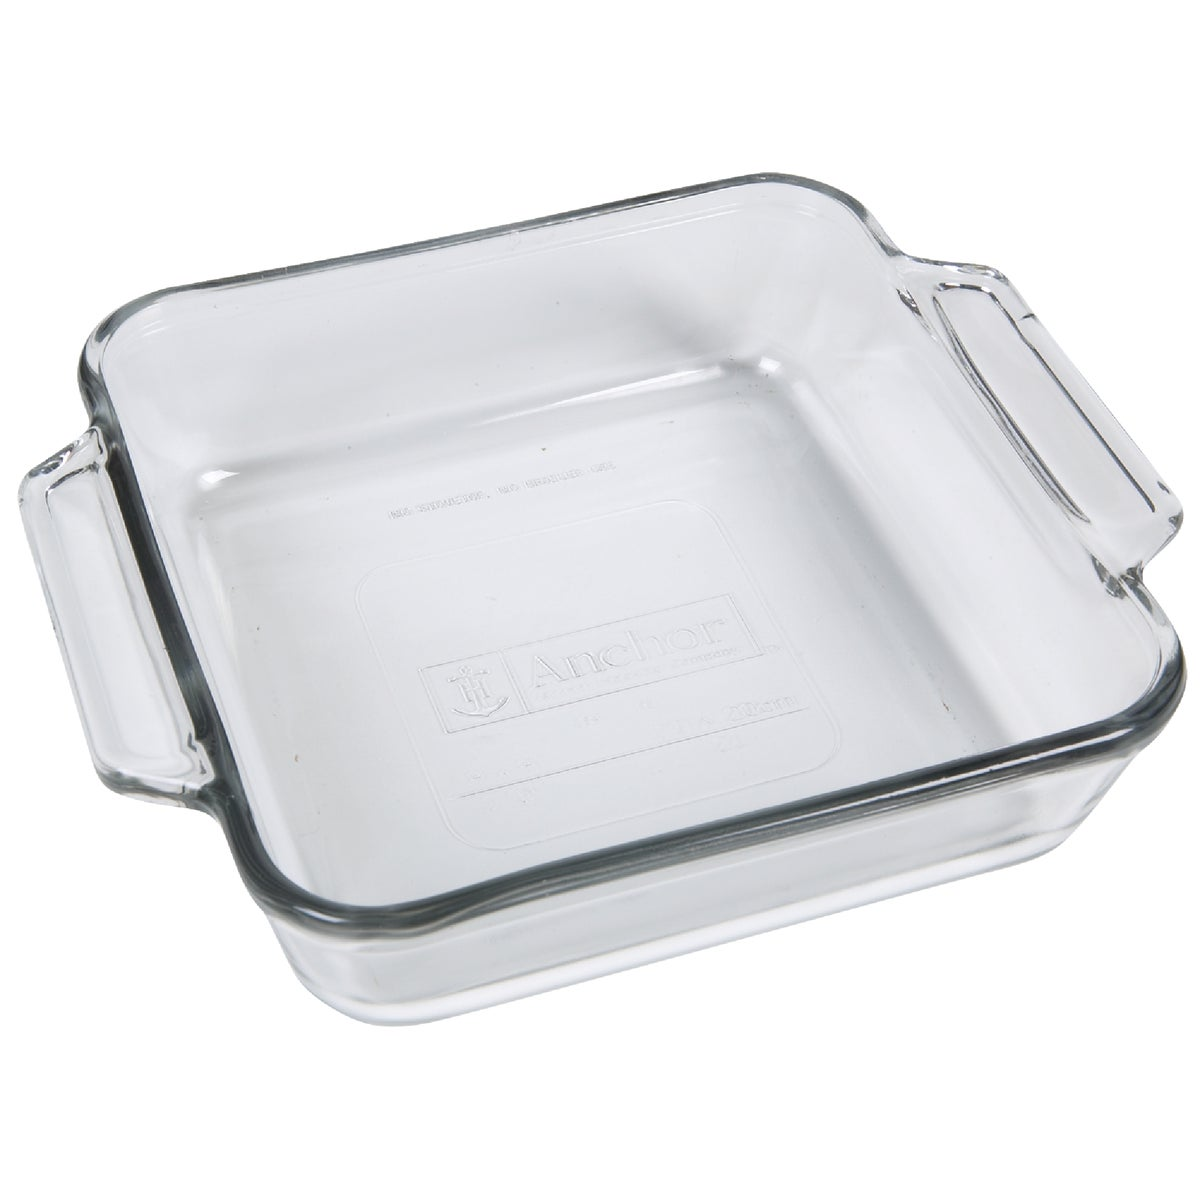 """8"""" SQUARE GLSS CAKE DISH - 81934OBL11 by Anchor Hckg Roberts"""